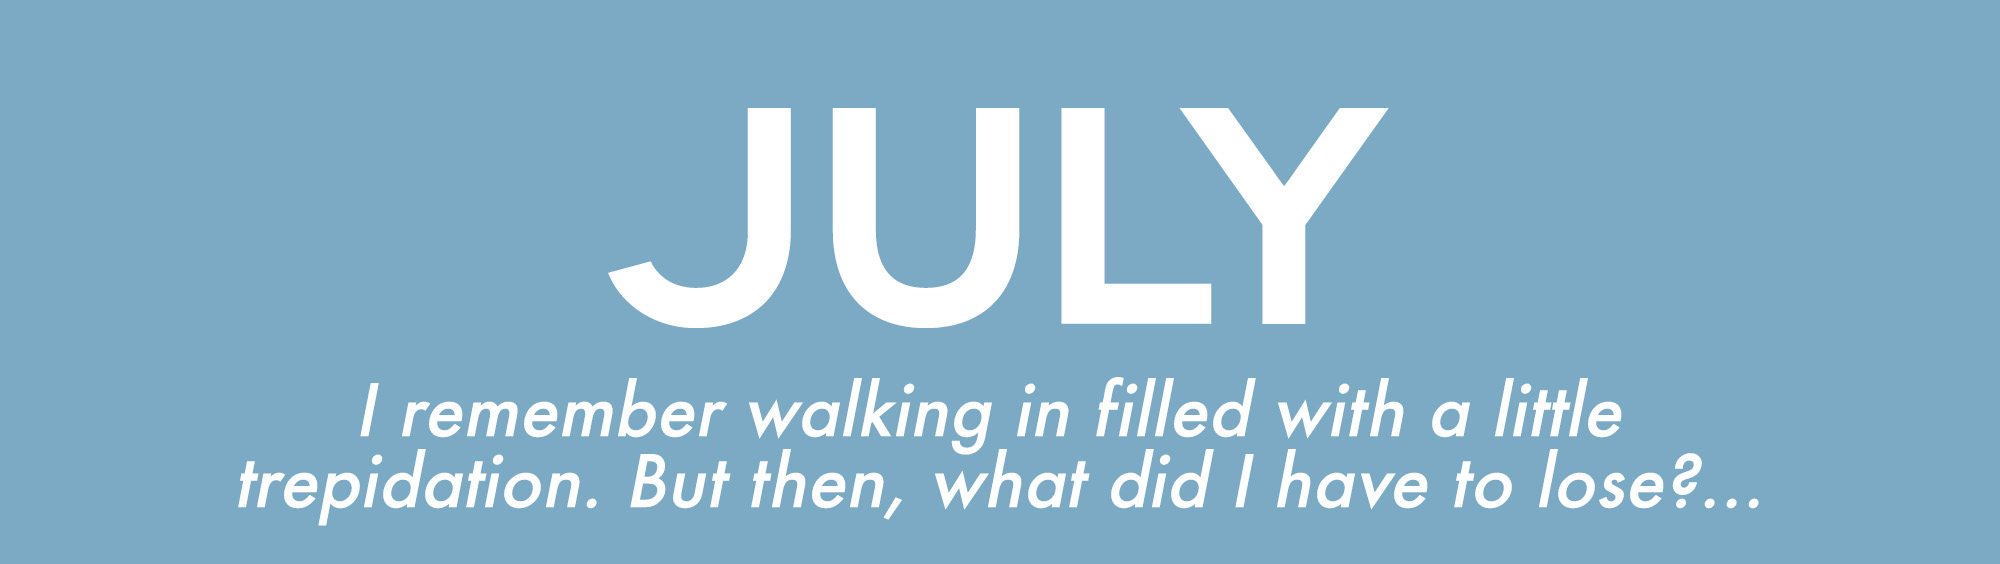 July_quote2.jpg